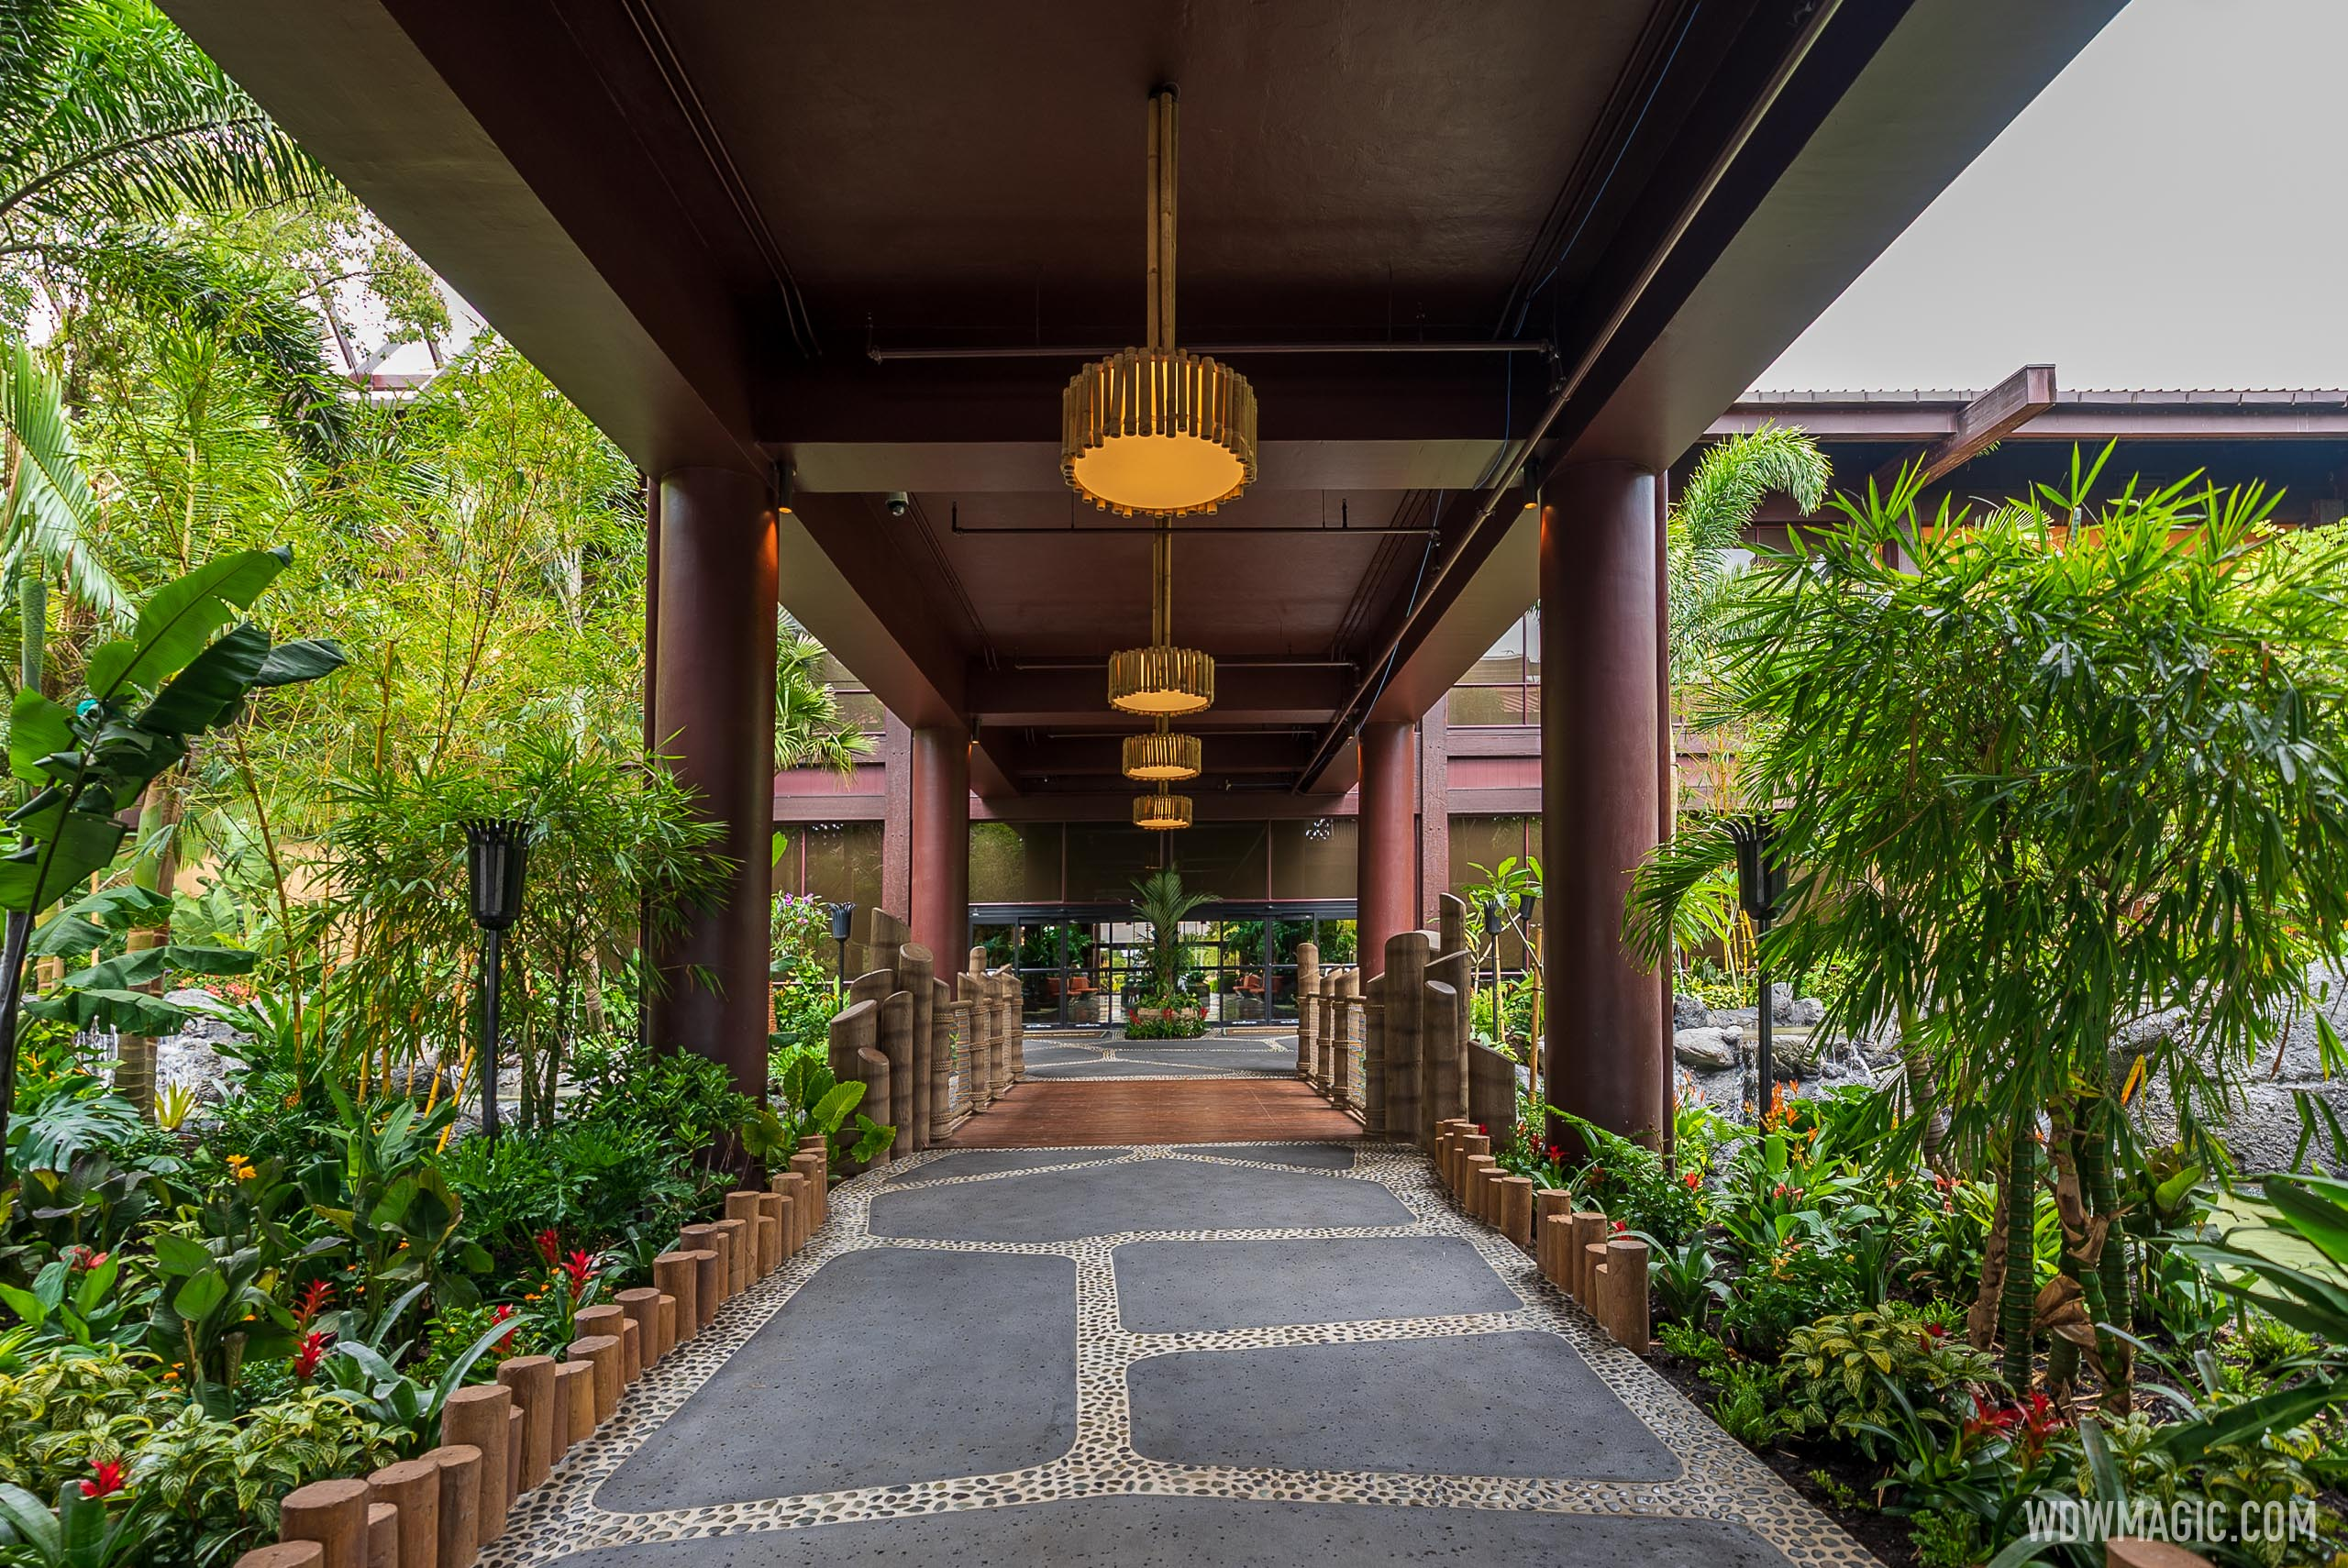 A look at the recently reopened main entrance at Disney's Polynesian Village Resort